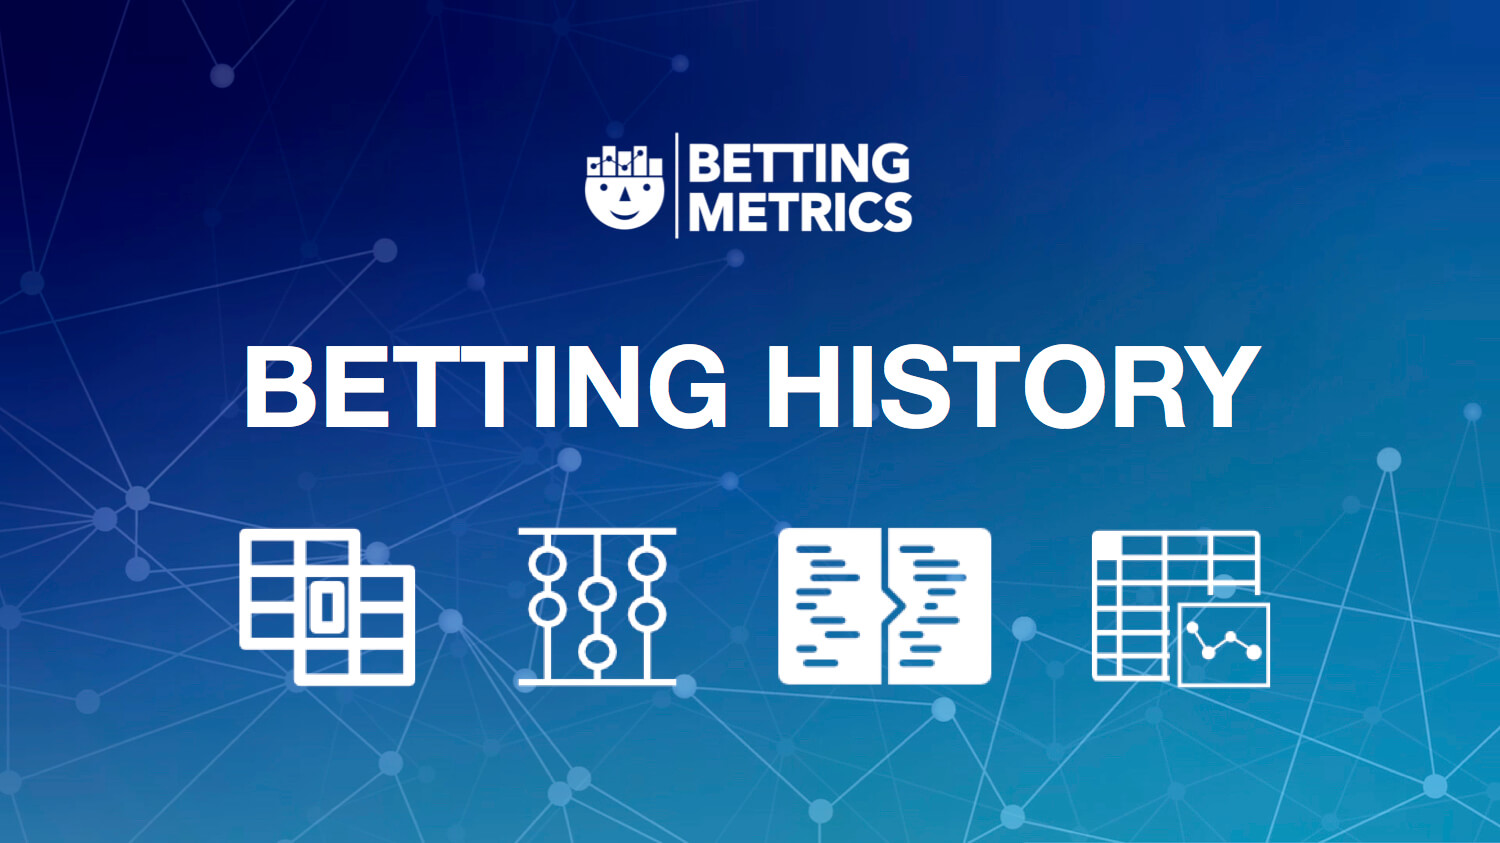 betting history bettingmetrics 3